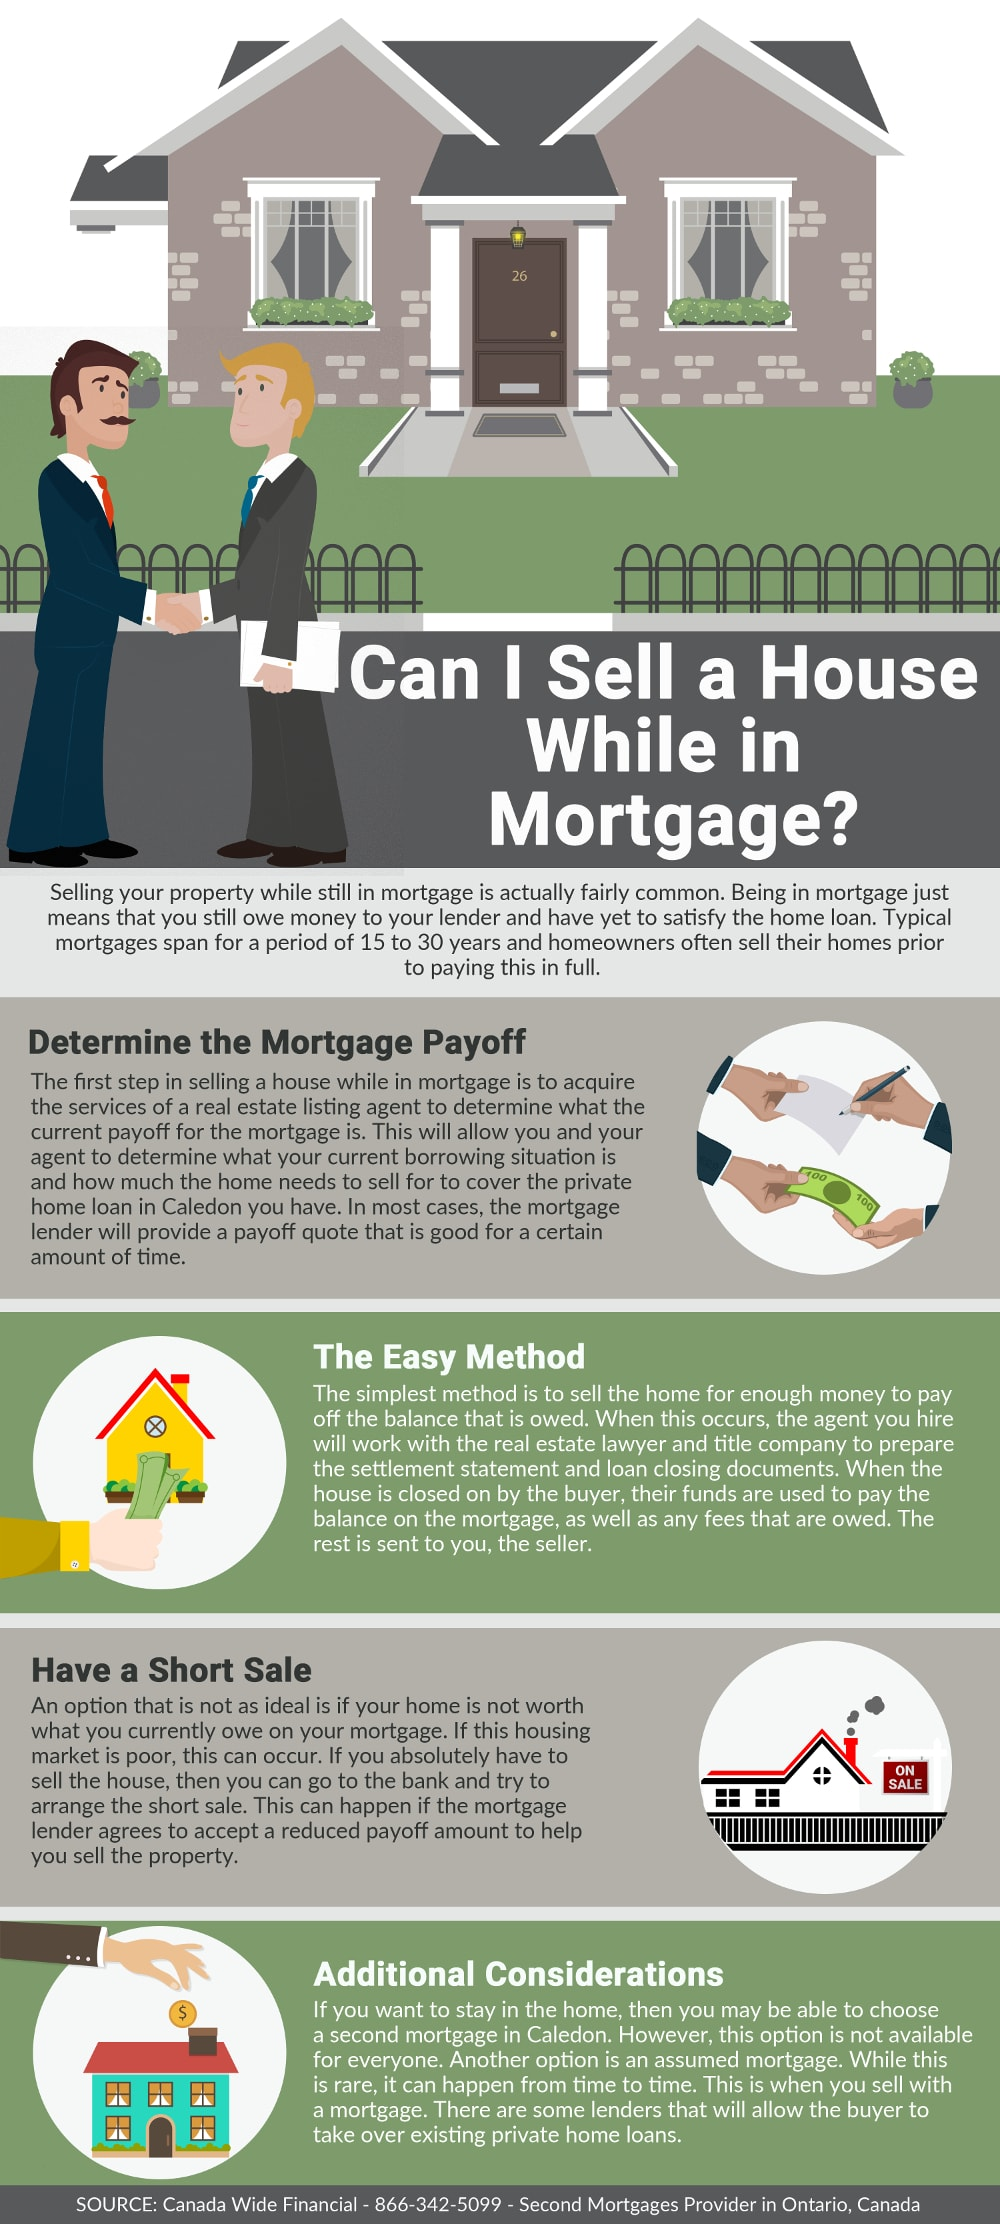 Can I Sell a House While in Mortgage? - Infographic